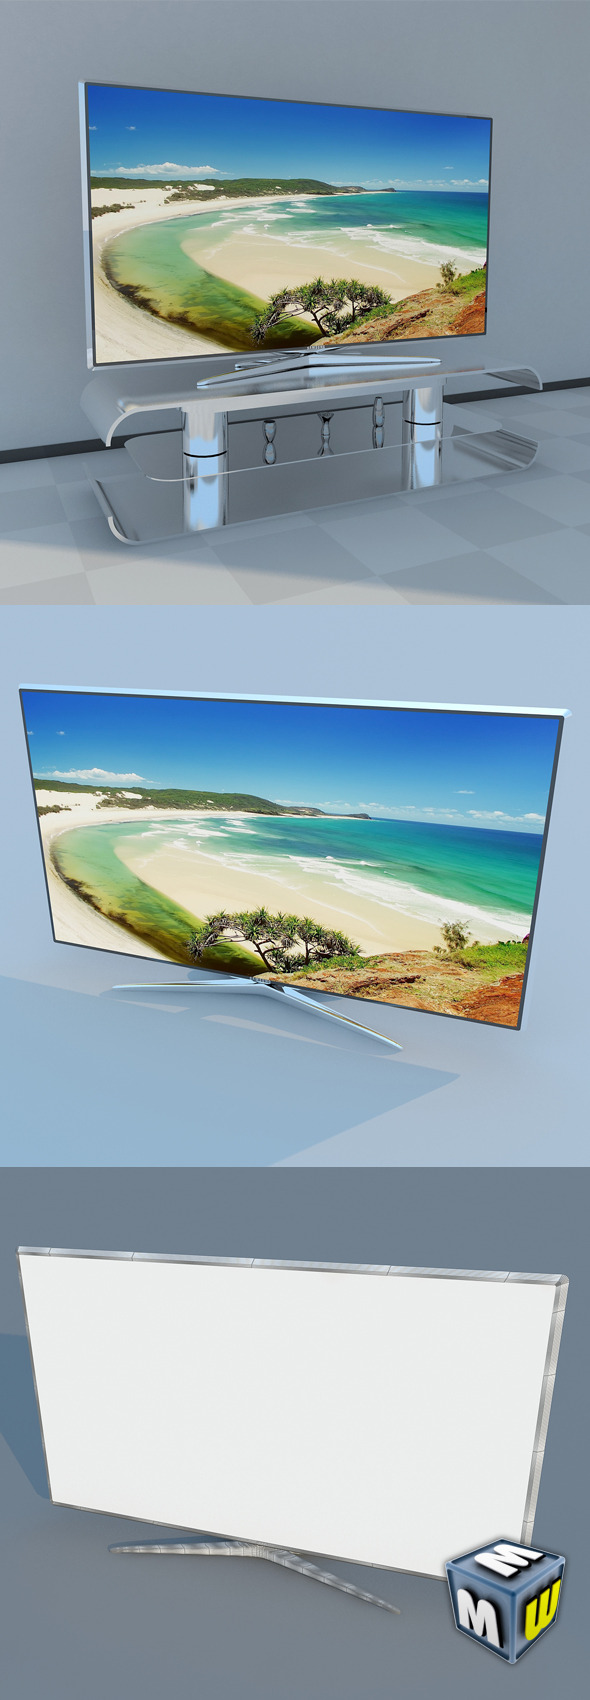 Samsung LED 60 D7000 - 3DOcean Item for Sale